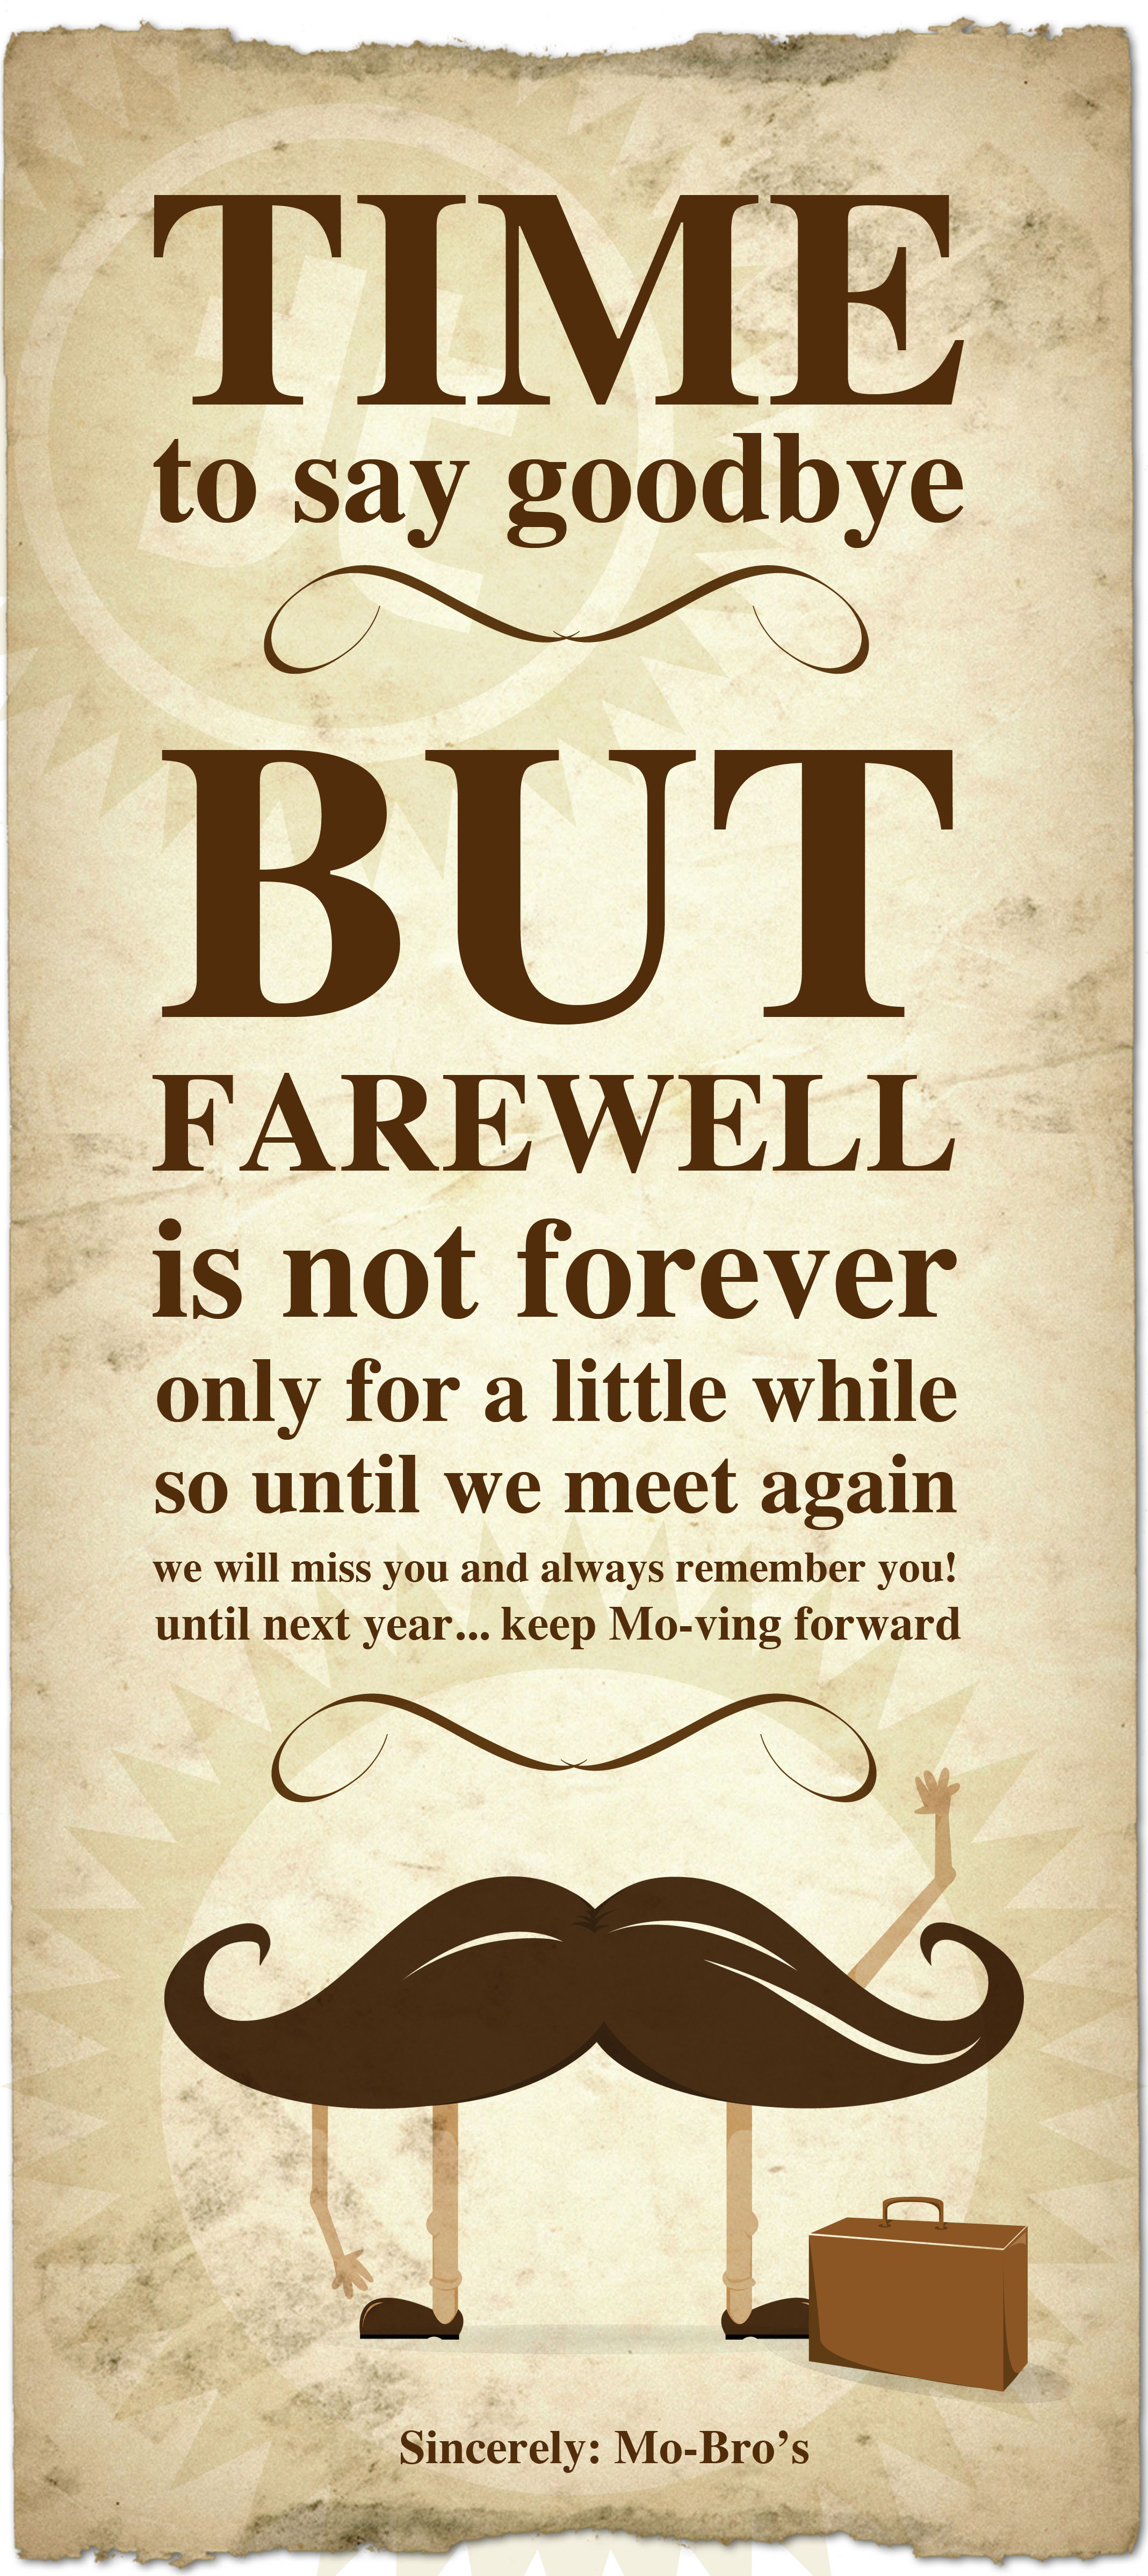 Funny Quotes For Boss Leaving Goodbye. QuotesGram